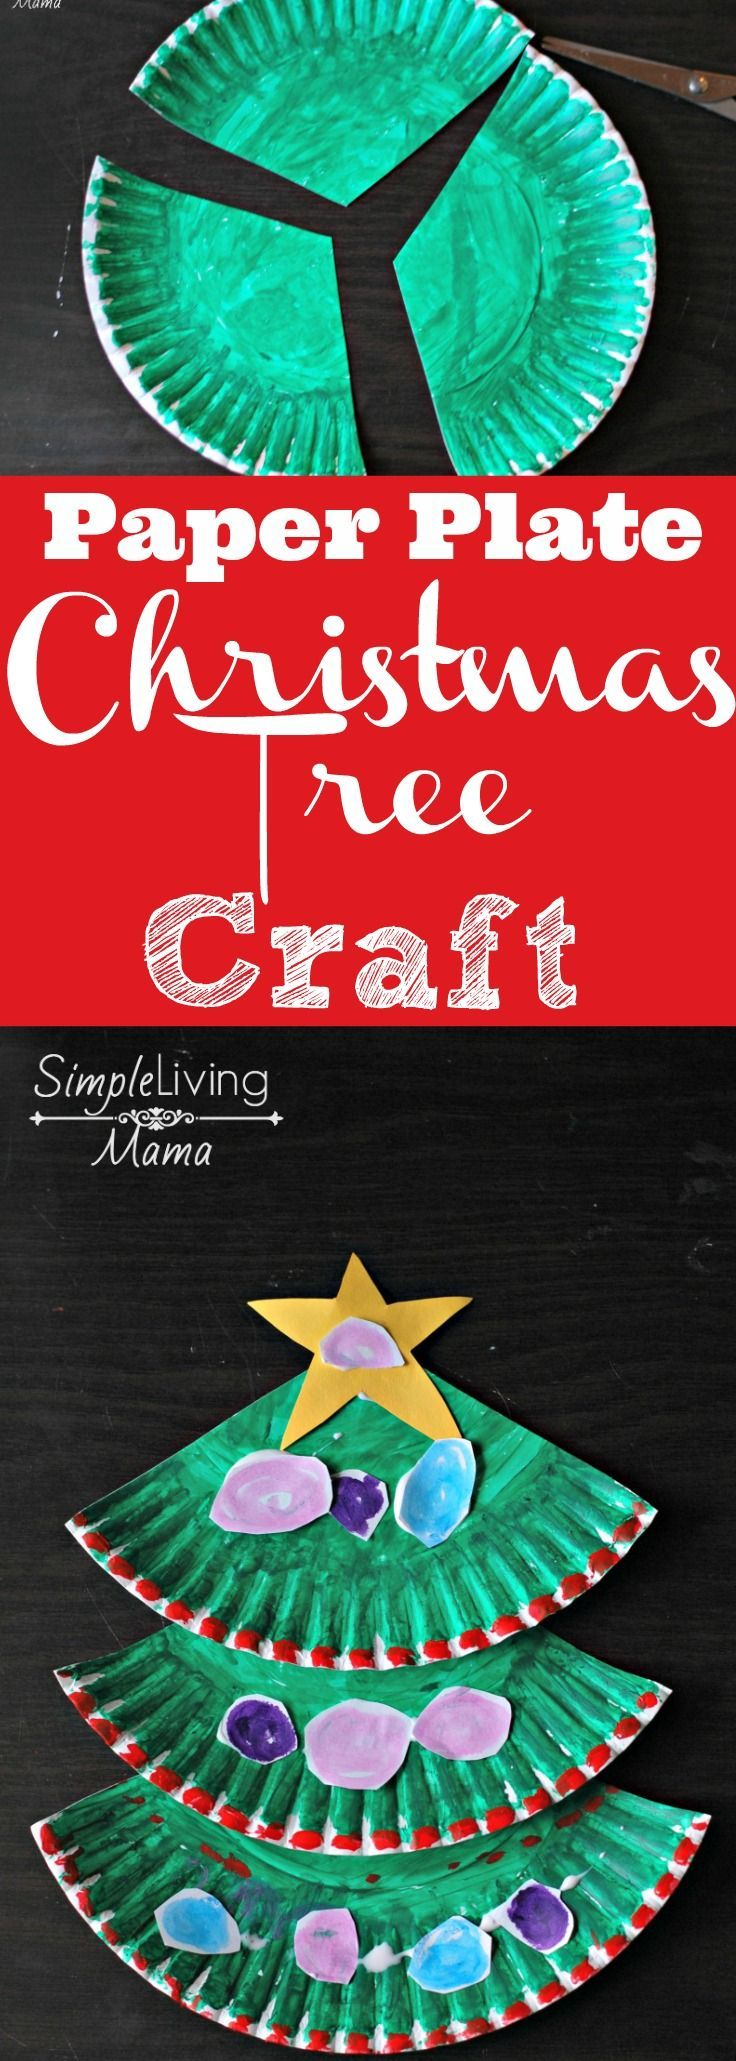 A DIY Paper Plate Christmas Tree craft made with Kwik Stix! Your kids are going to